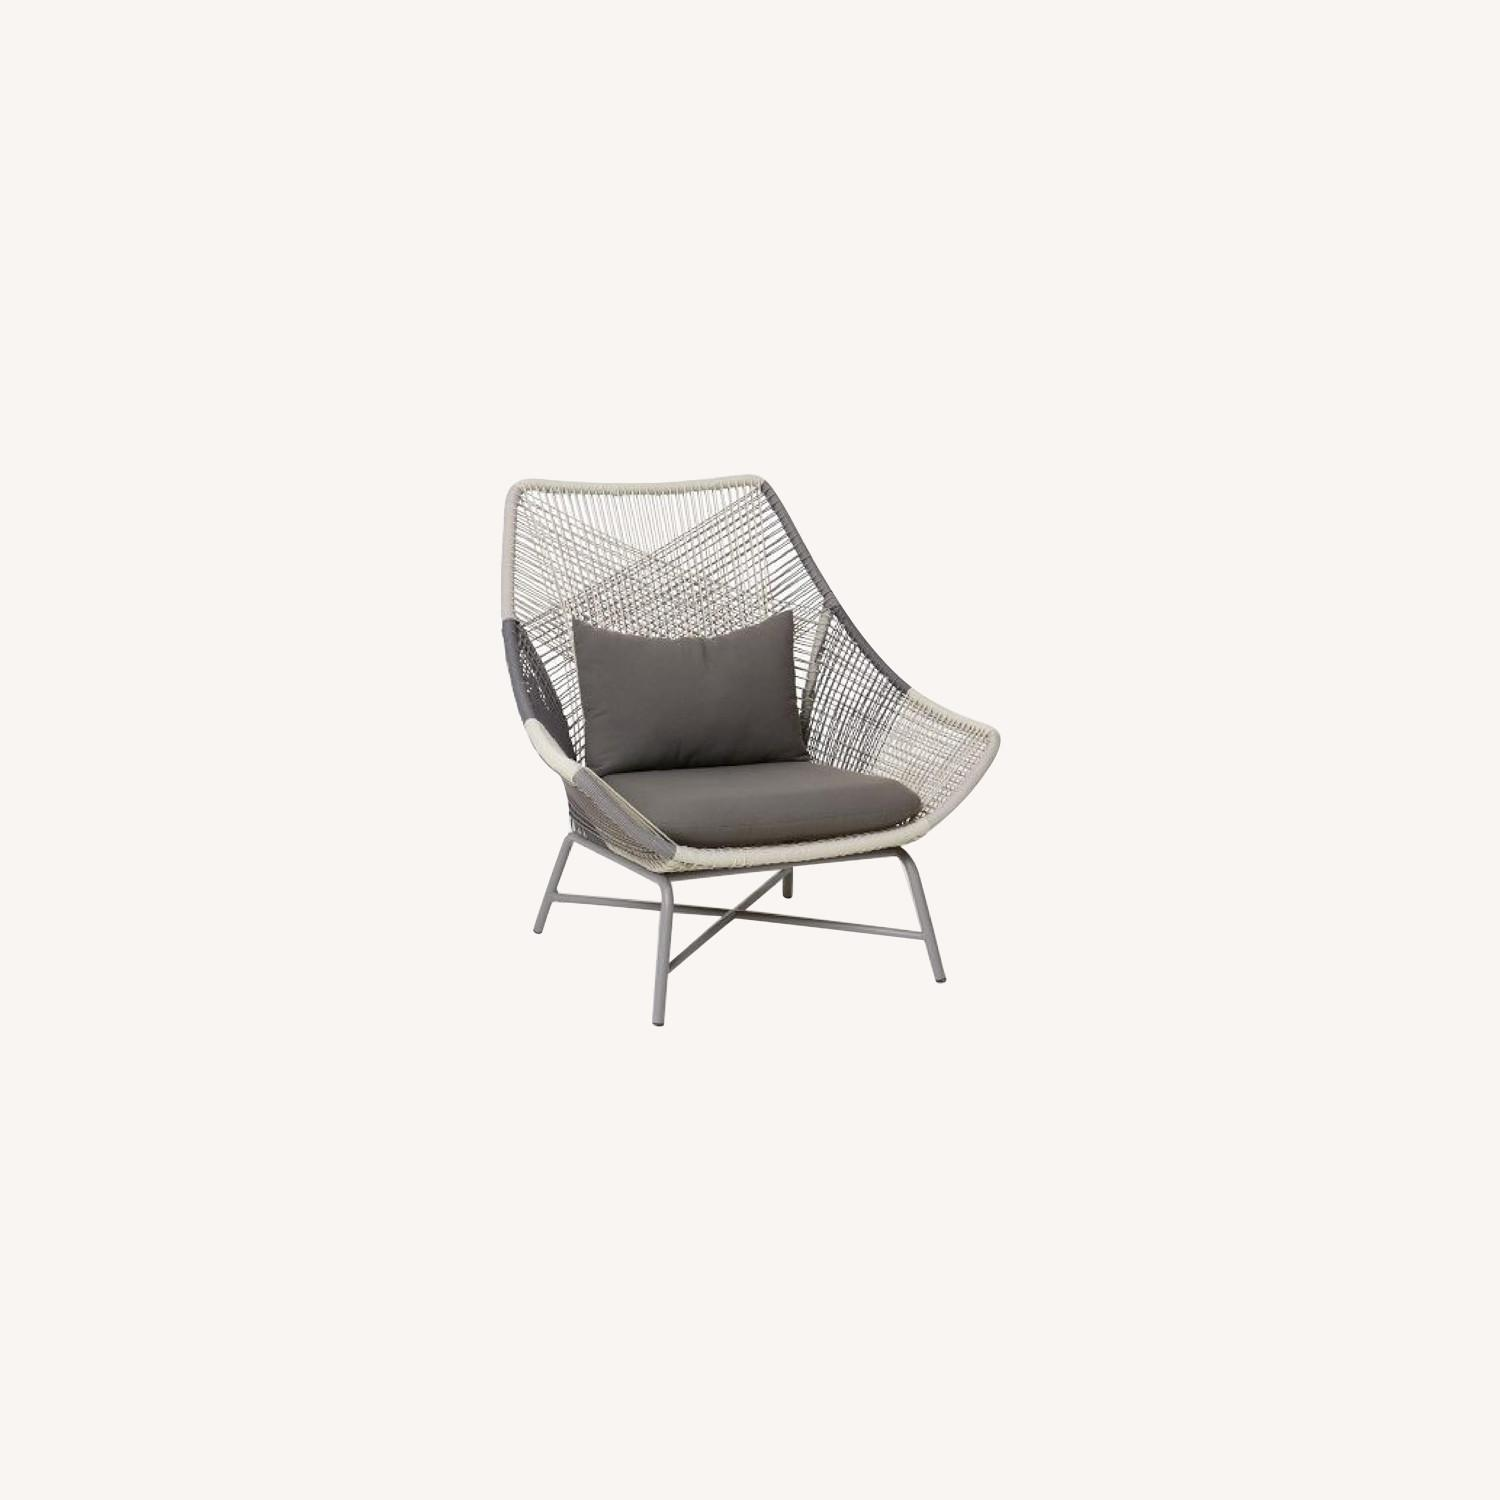 West Elm Huron Outdoor Lounge Chair & Ottoman - image-0